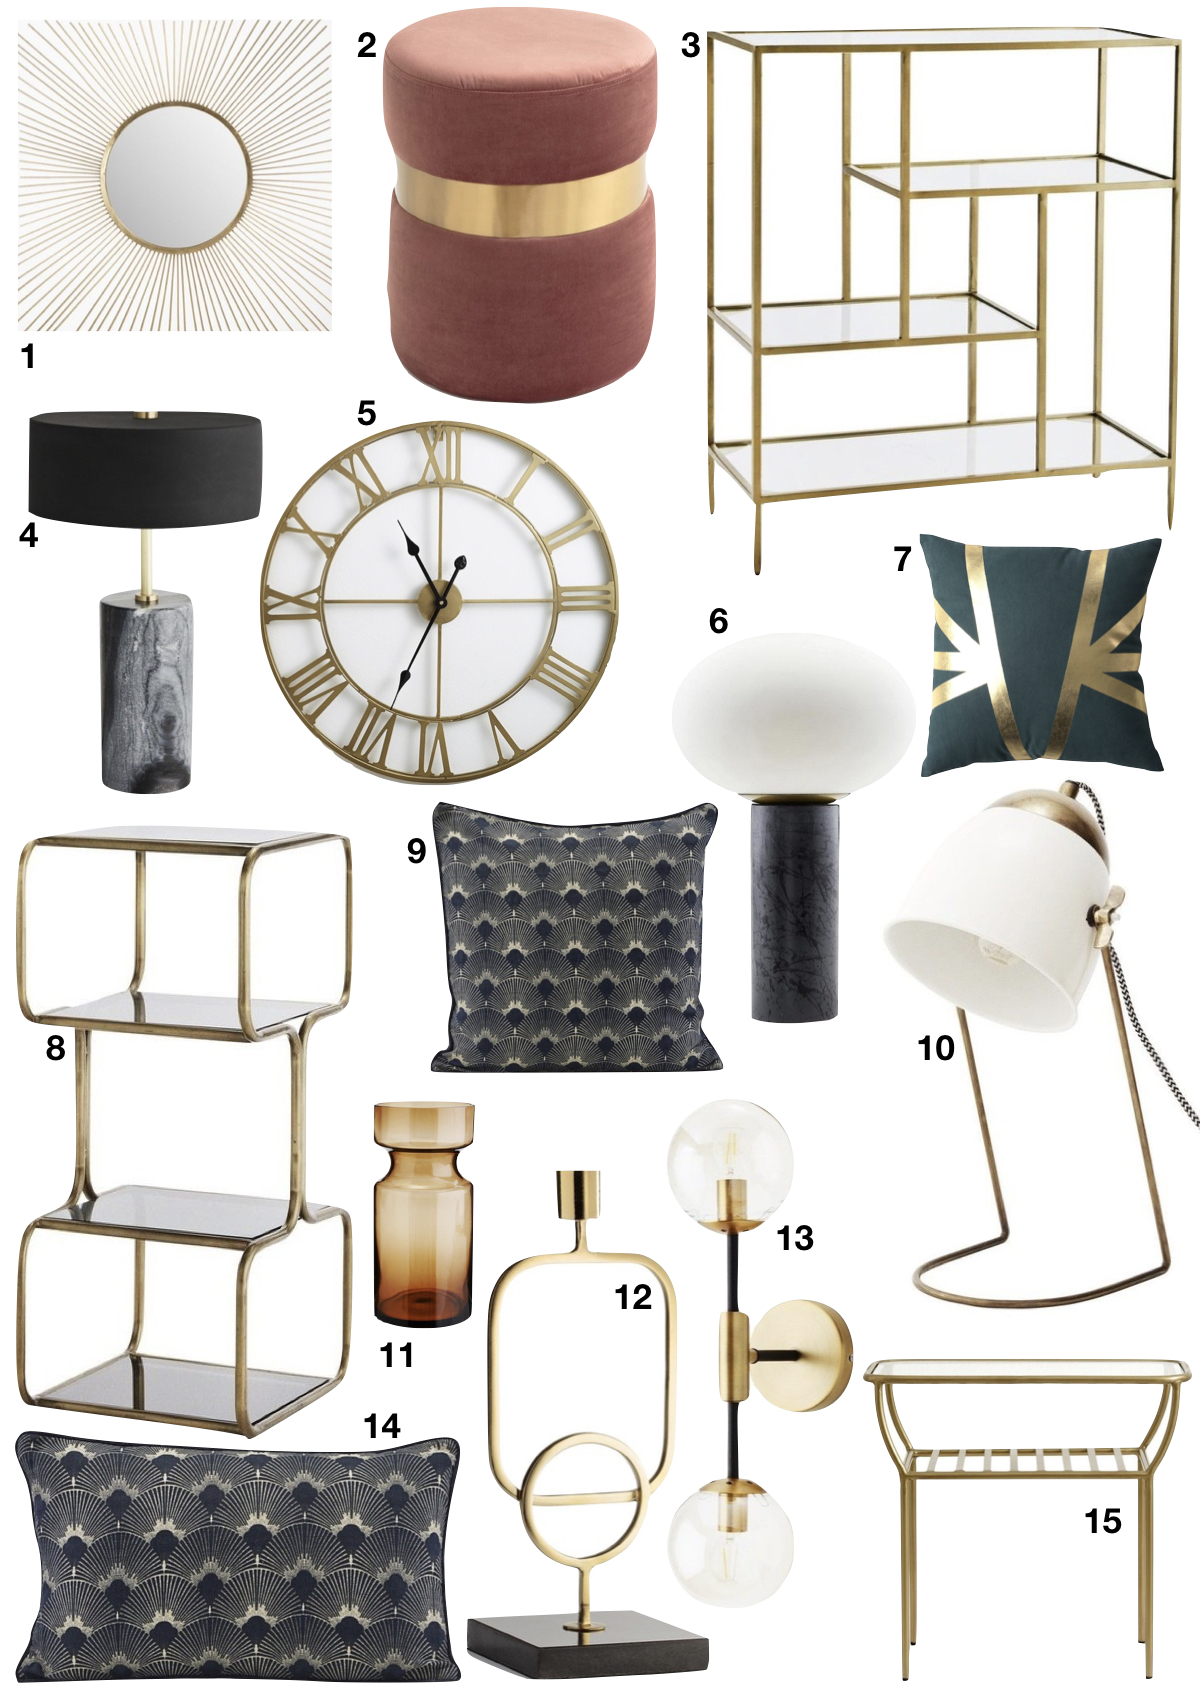 tendance néo art déco shopping liste chambre - blog déco - clem around the corner